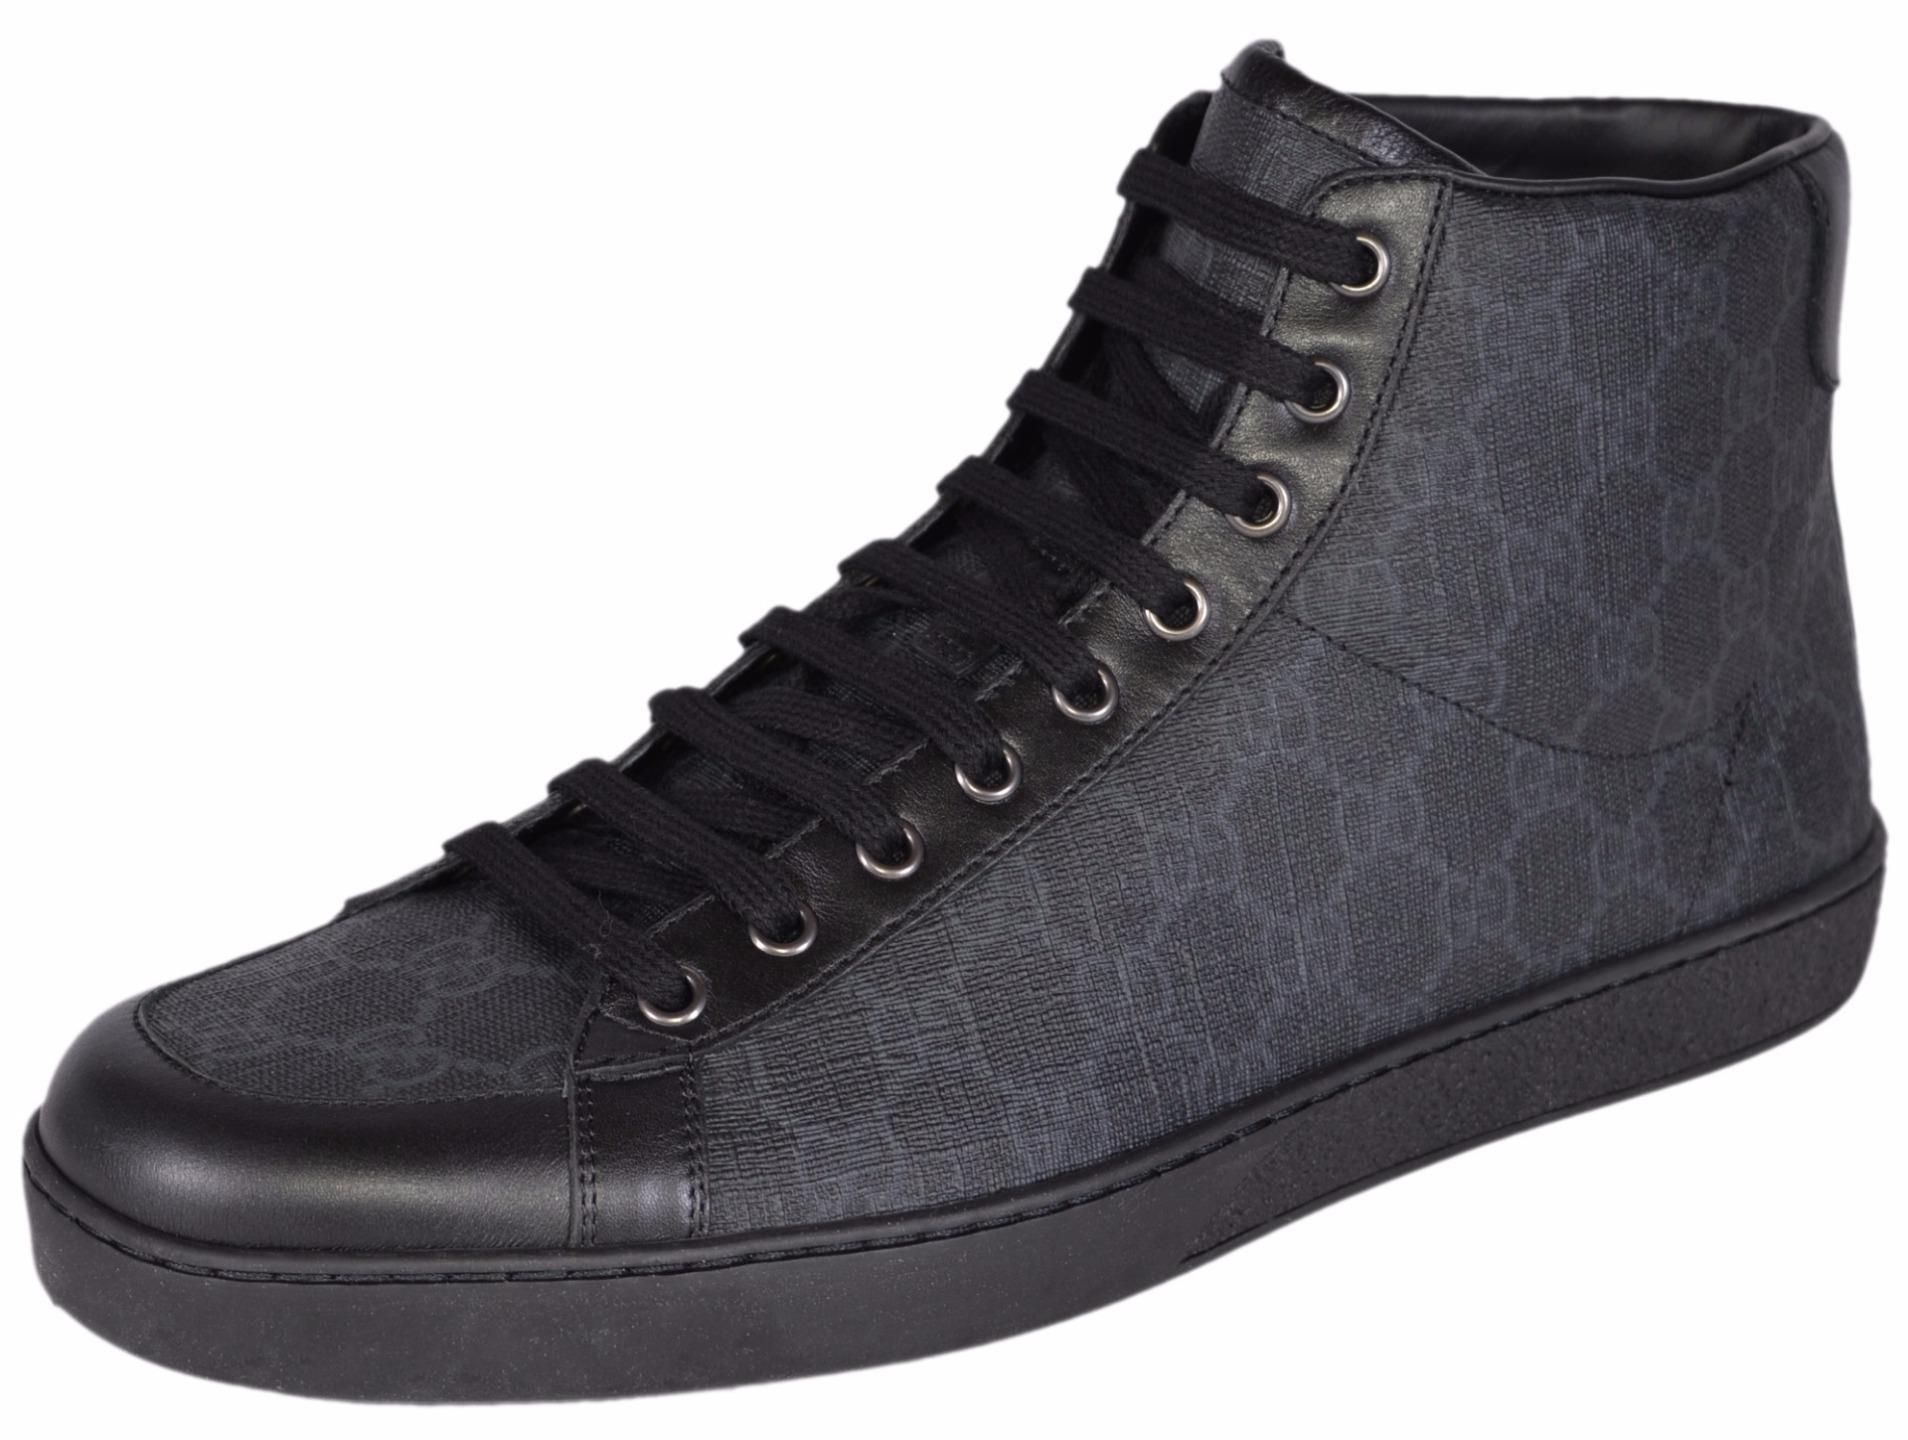 37447b264 Gucci New Men's Gg Supreme Canvas Hysteria Crest High Top 10.5g Black  Athletic Shoes. Get the must-have athletic shoes of this season!